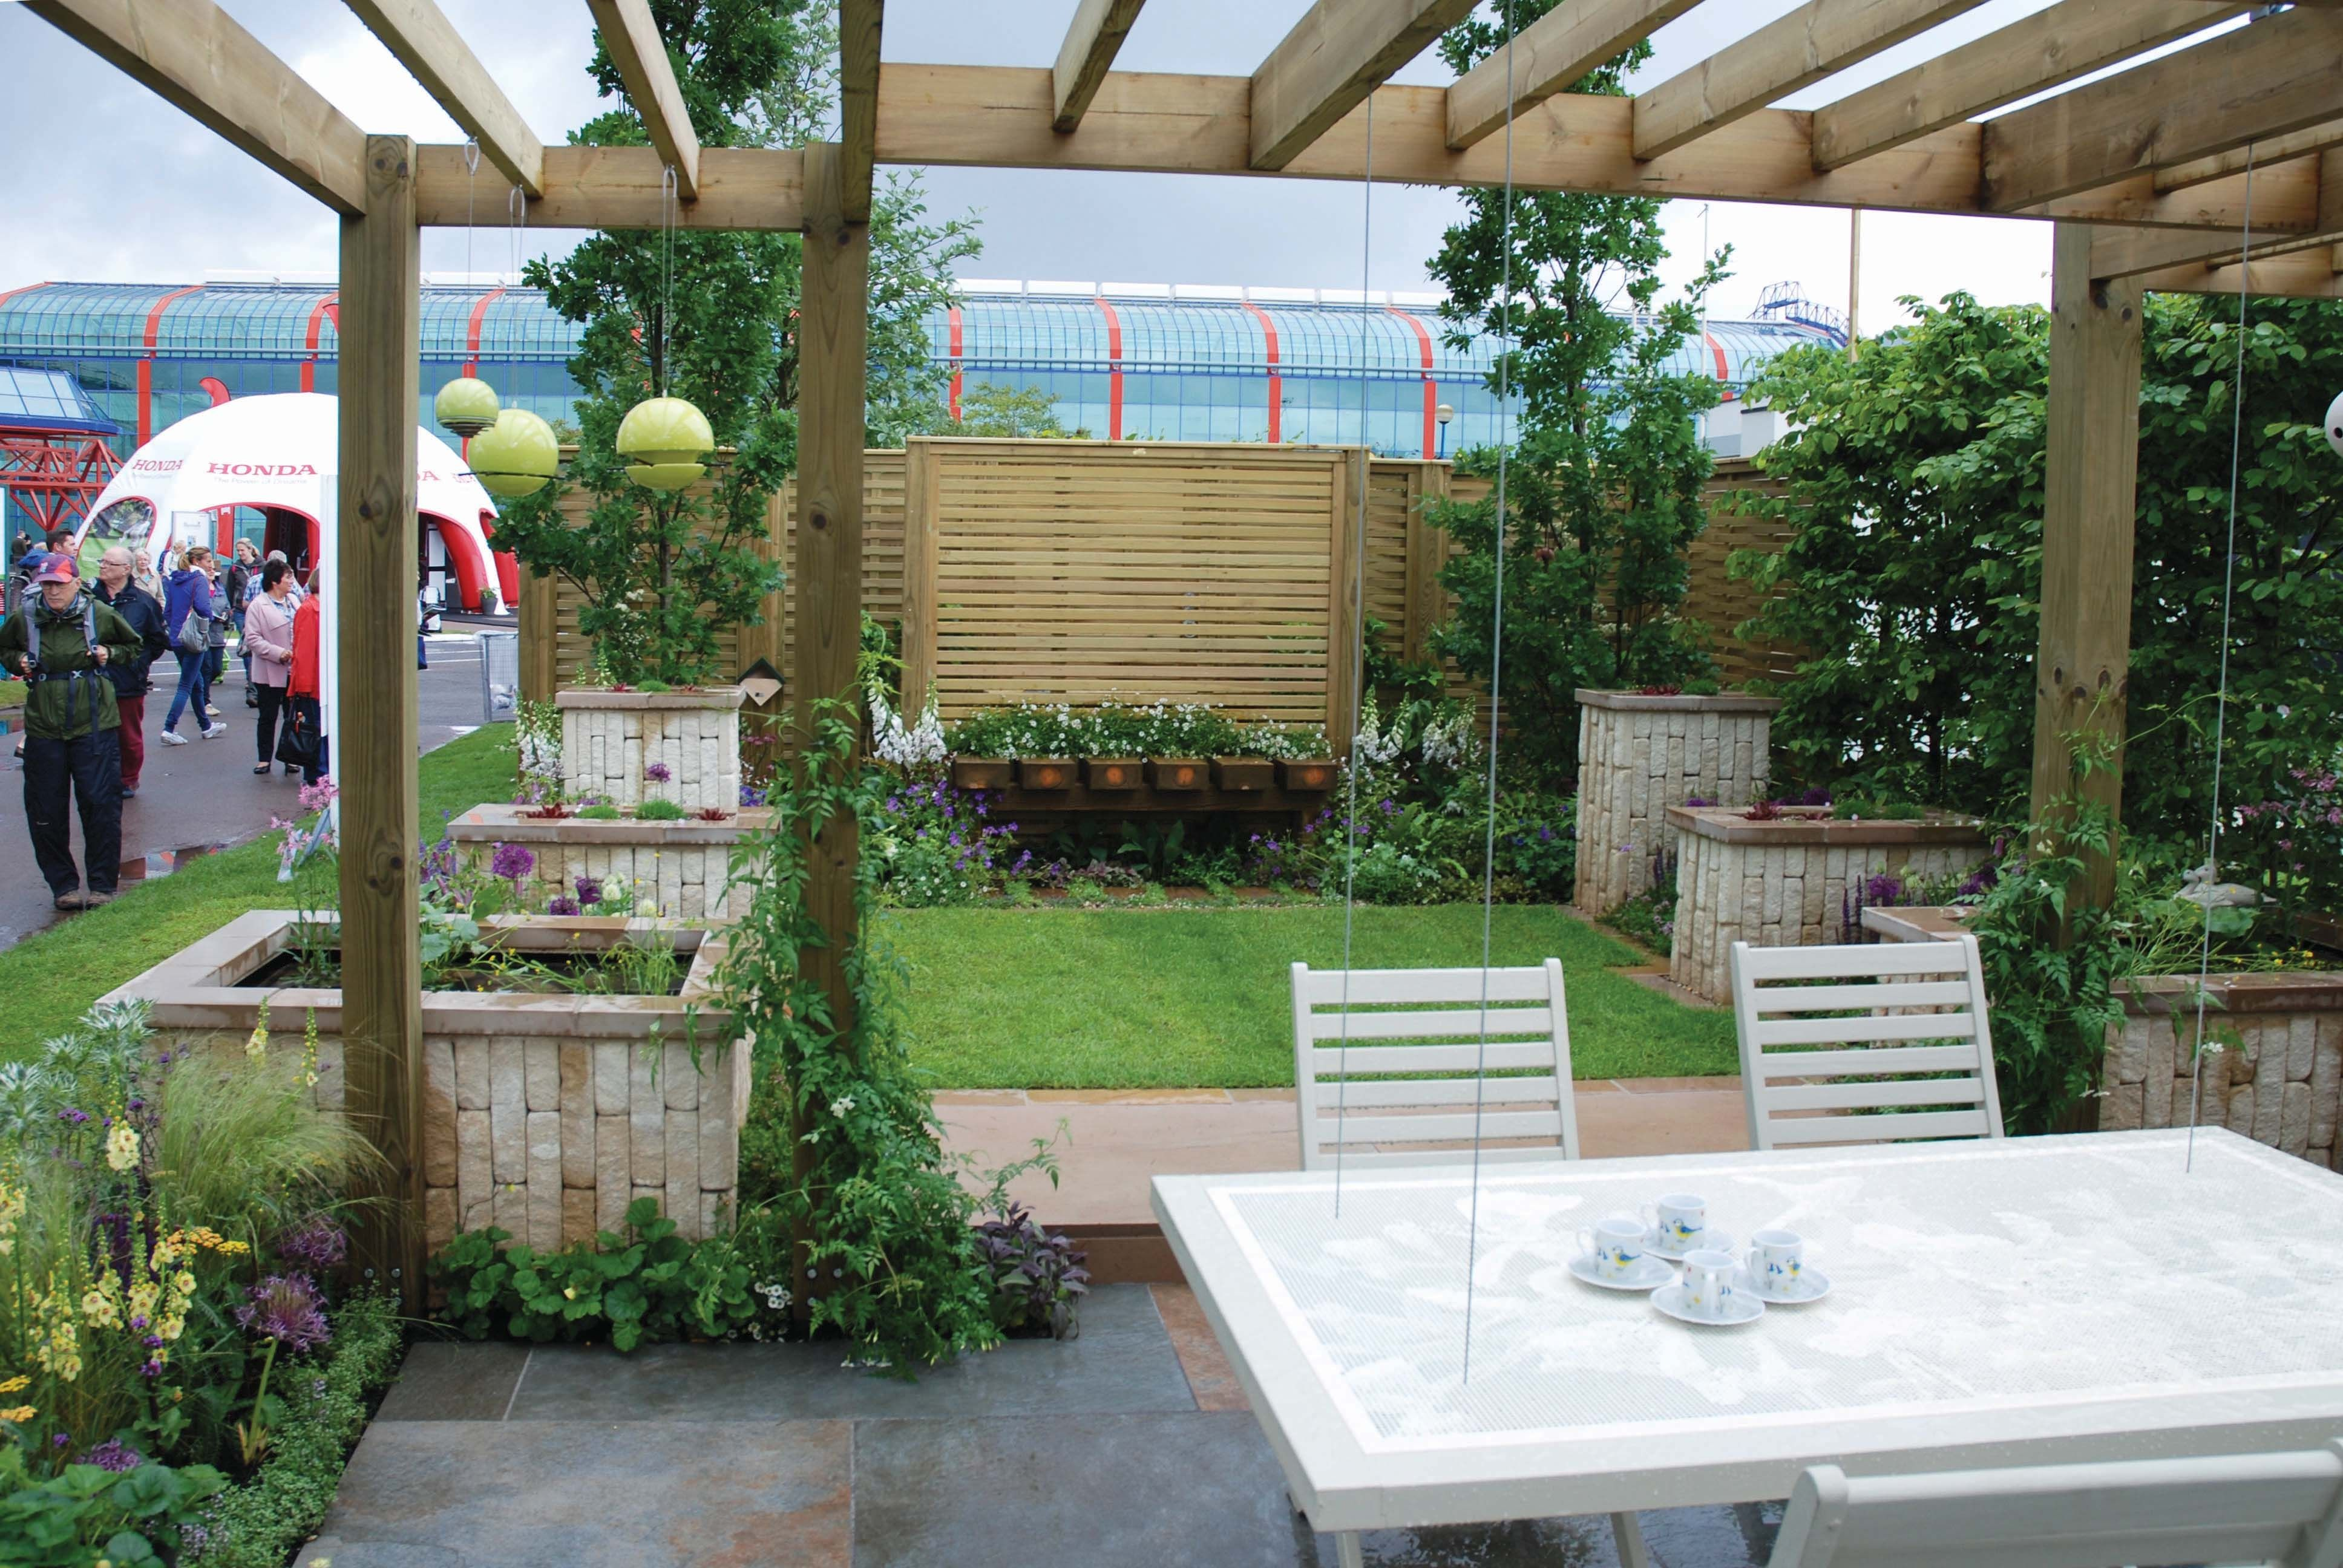 Genesis Landscapes and Wardrop & Stevenson show garden 'The Green Connection' for BBC Gardeners World Live 2016.